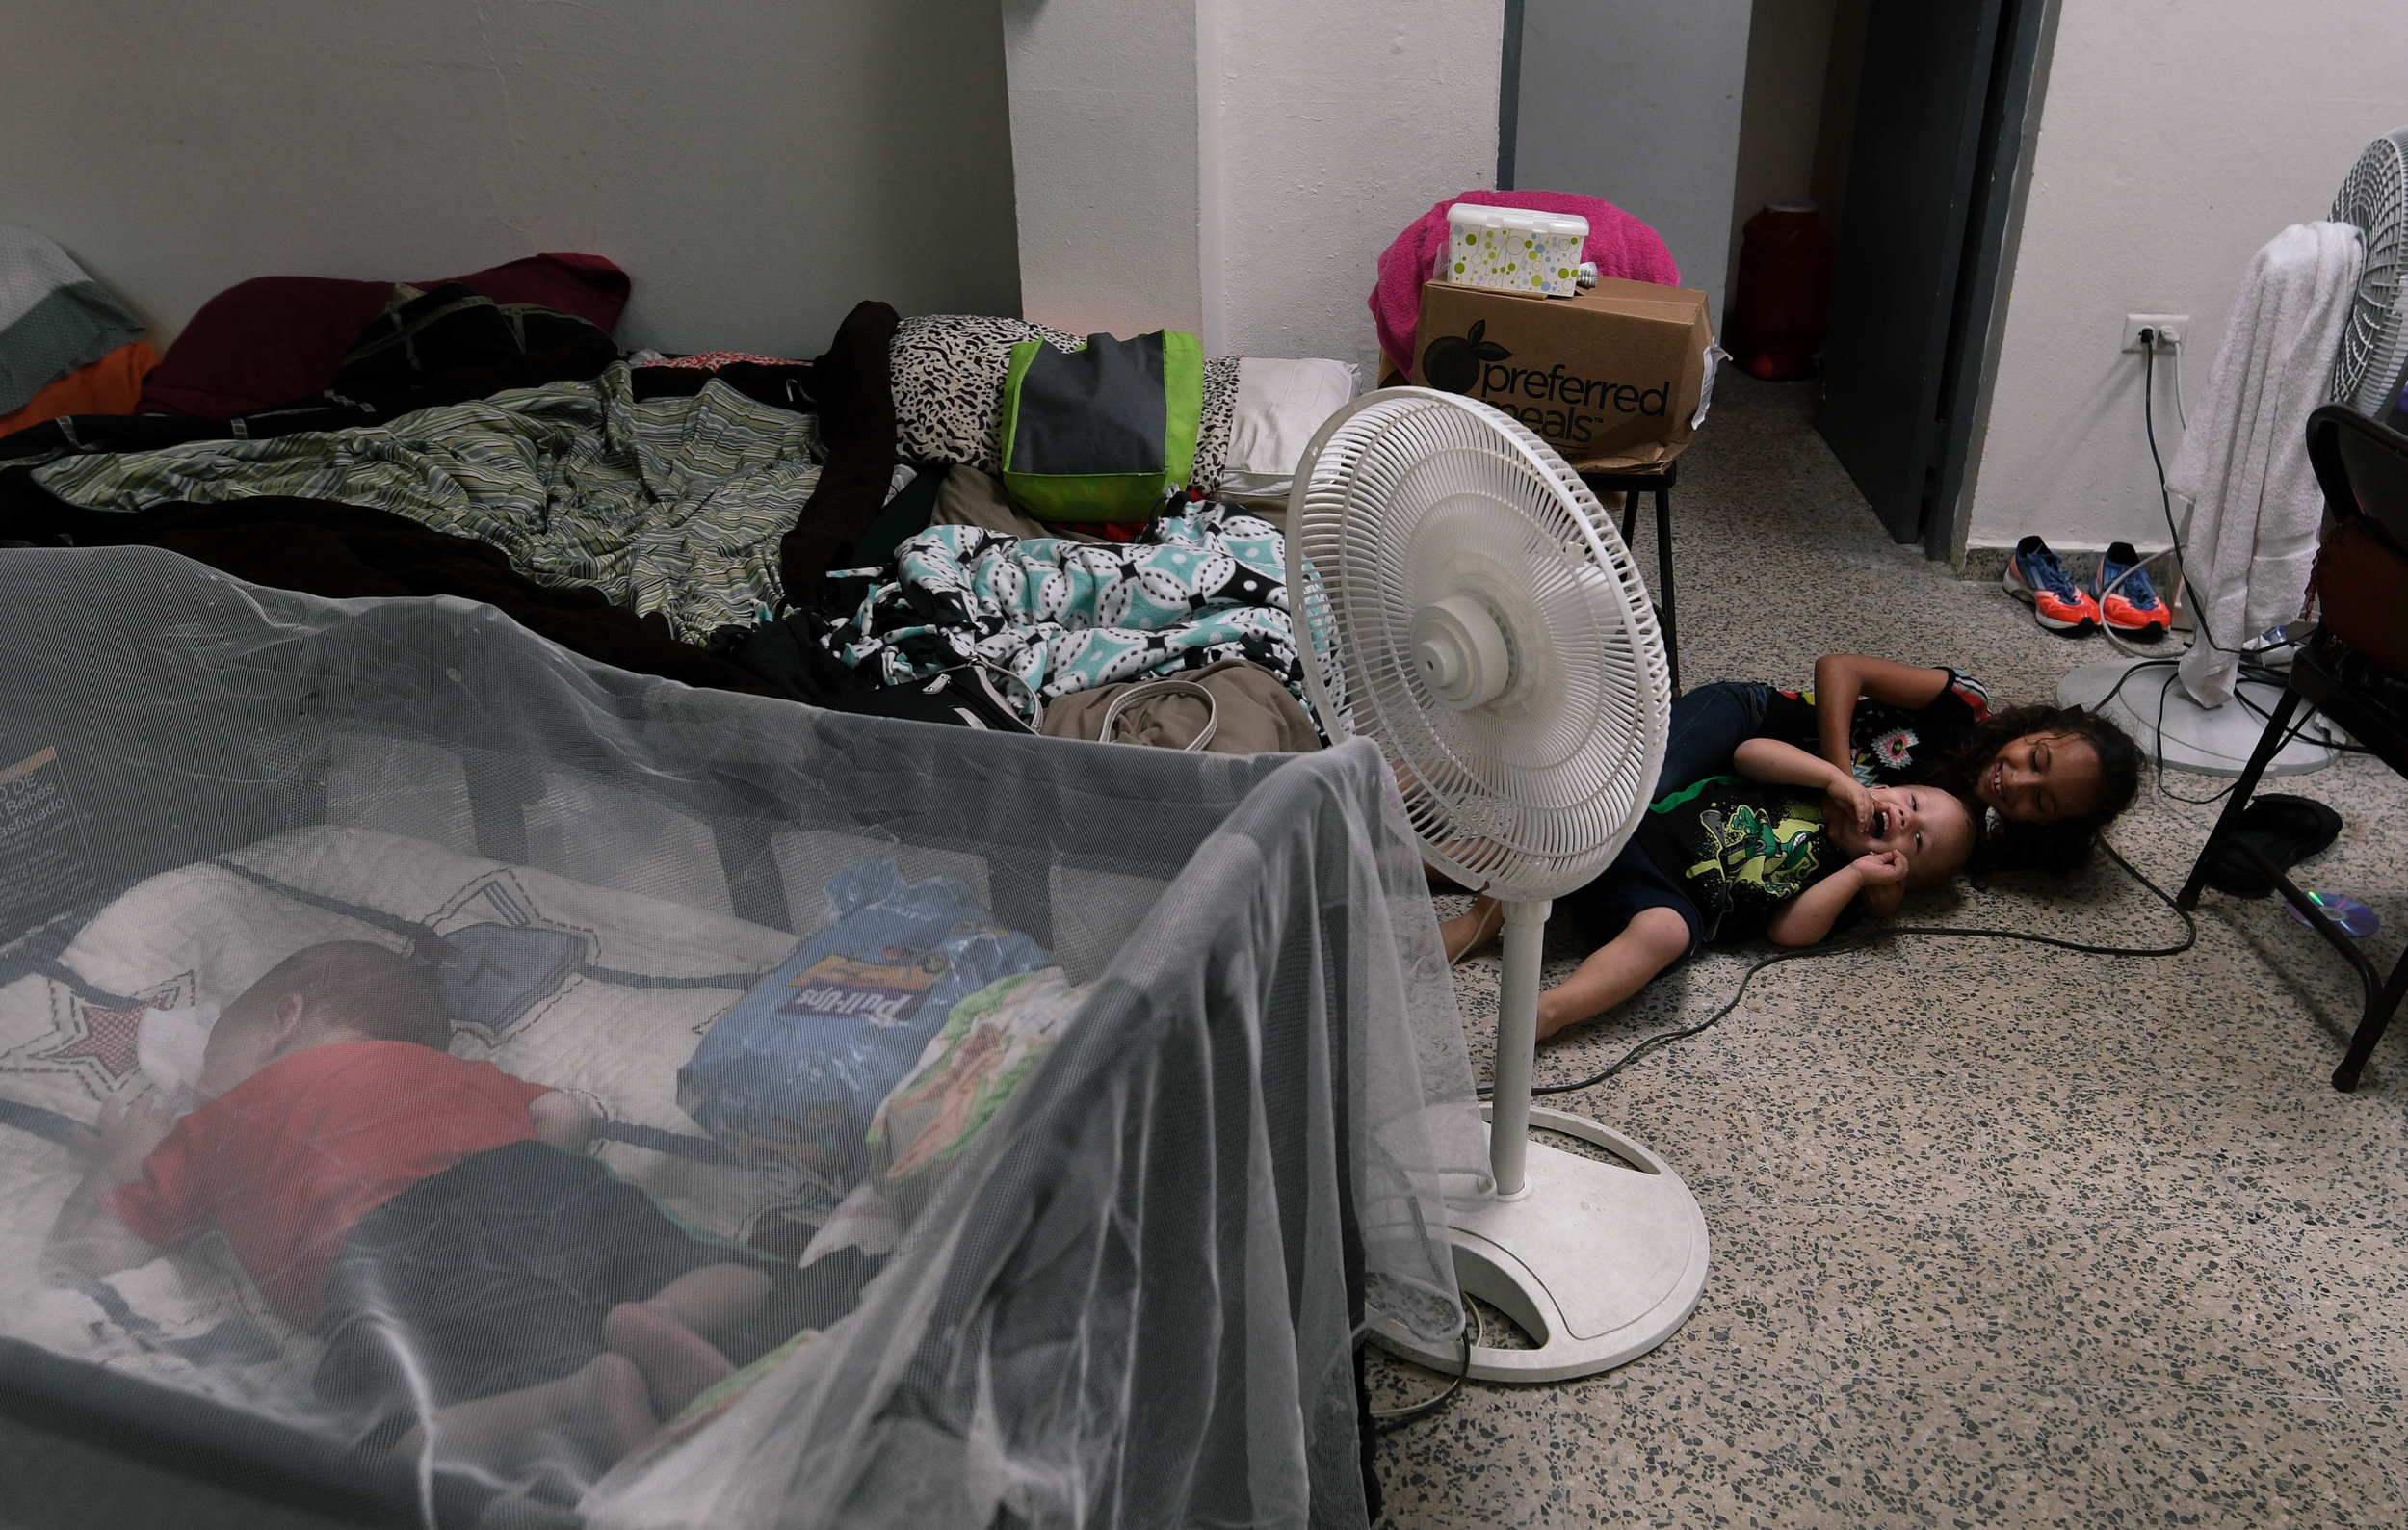 EXPAND   Four-month-old Kaleb Hernandez sleeps while his brother Mark plays with another child in the shelter. With the shelter running on a generator, a fan must be kept on the younger children so they don't overheat.